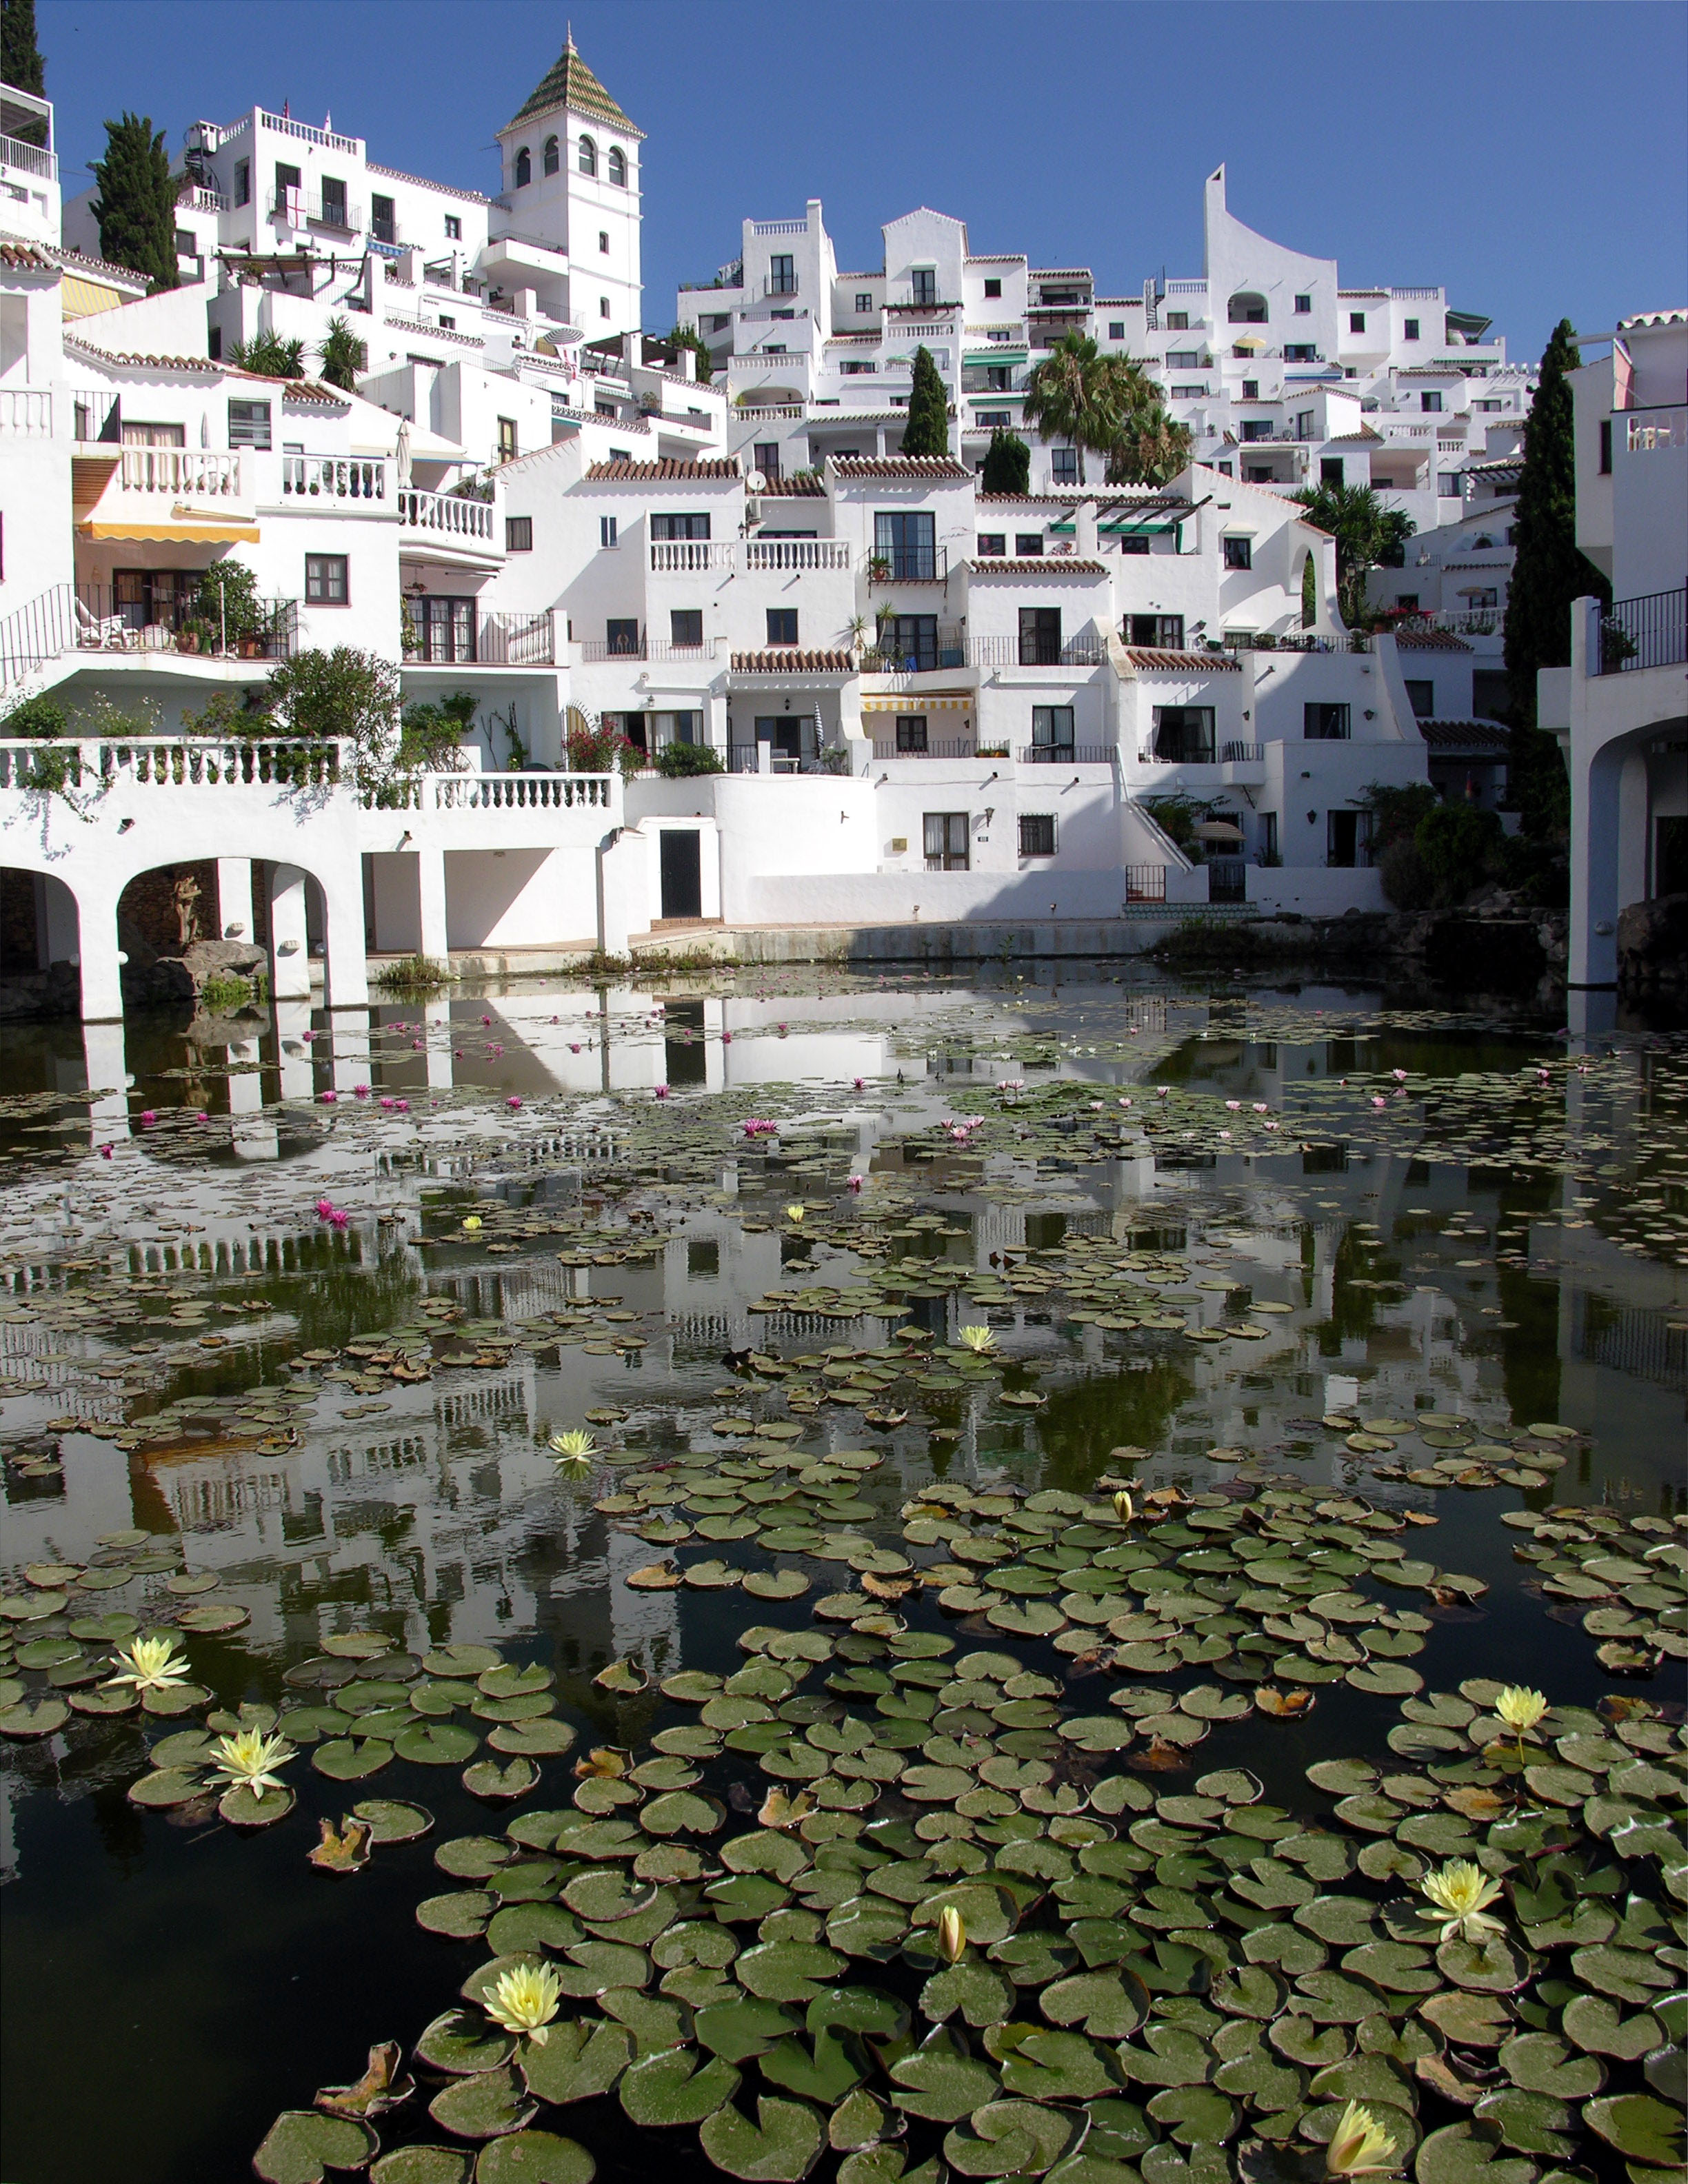 Nerja Spain  city photos gallery : Nerja Capistrano Wikipedia, the free encyclopedia